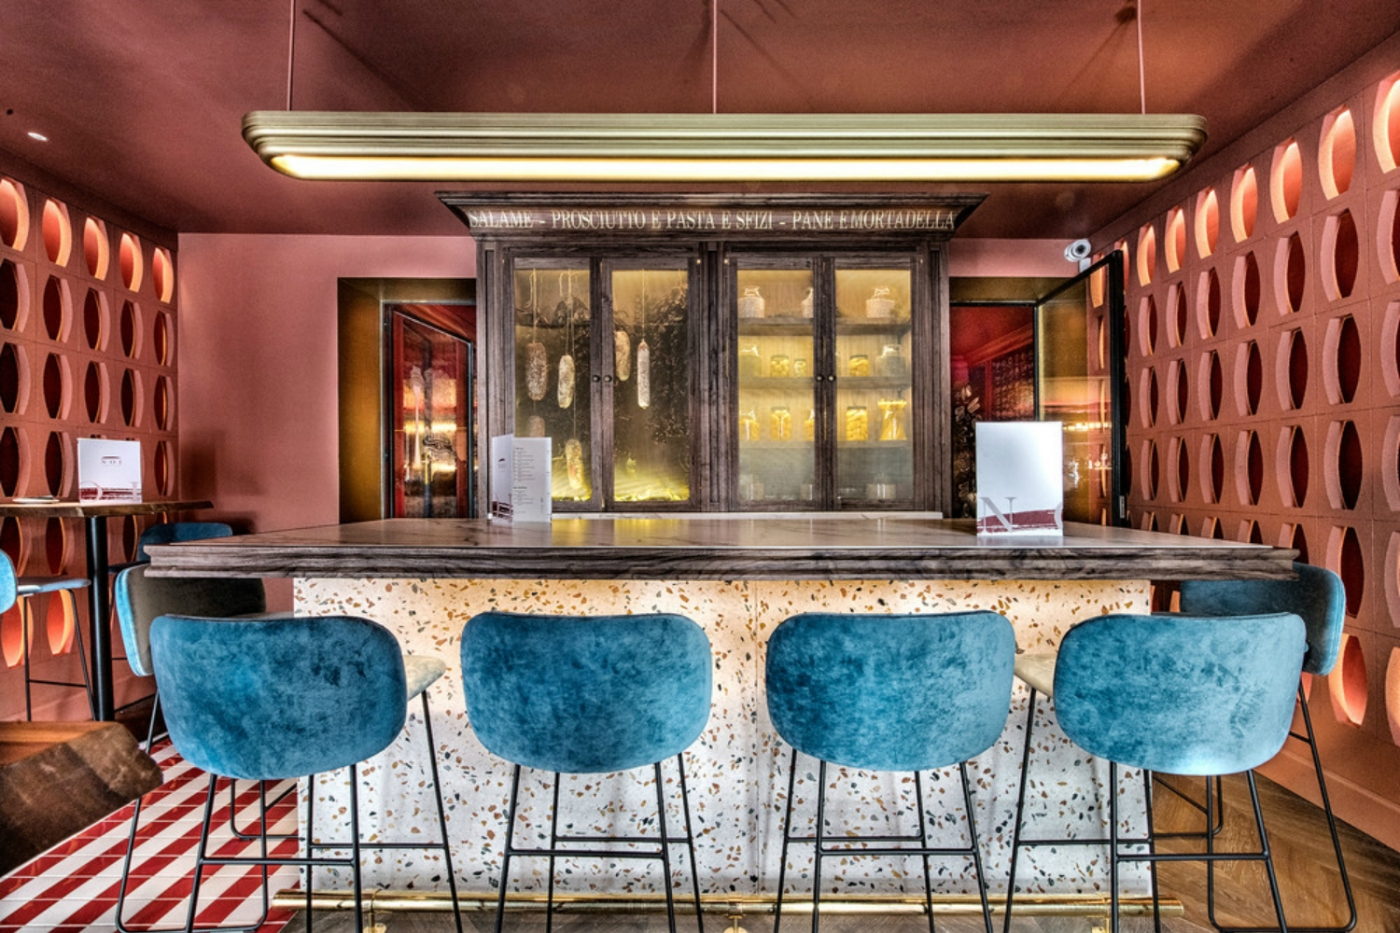 restaurant design 'Noi Italian', A Restaurant Design Full of Pop Aesthetic Noi Italian A Restaurant Full of Pop Aesthetic feature 1400x933